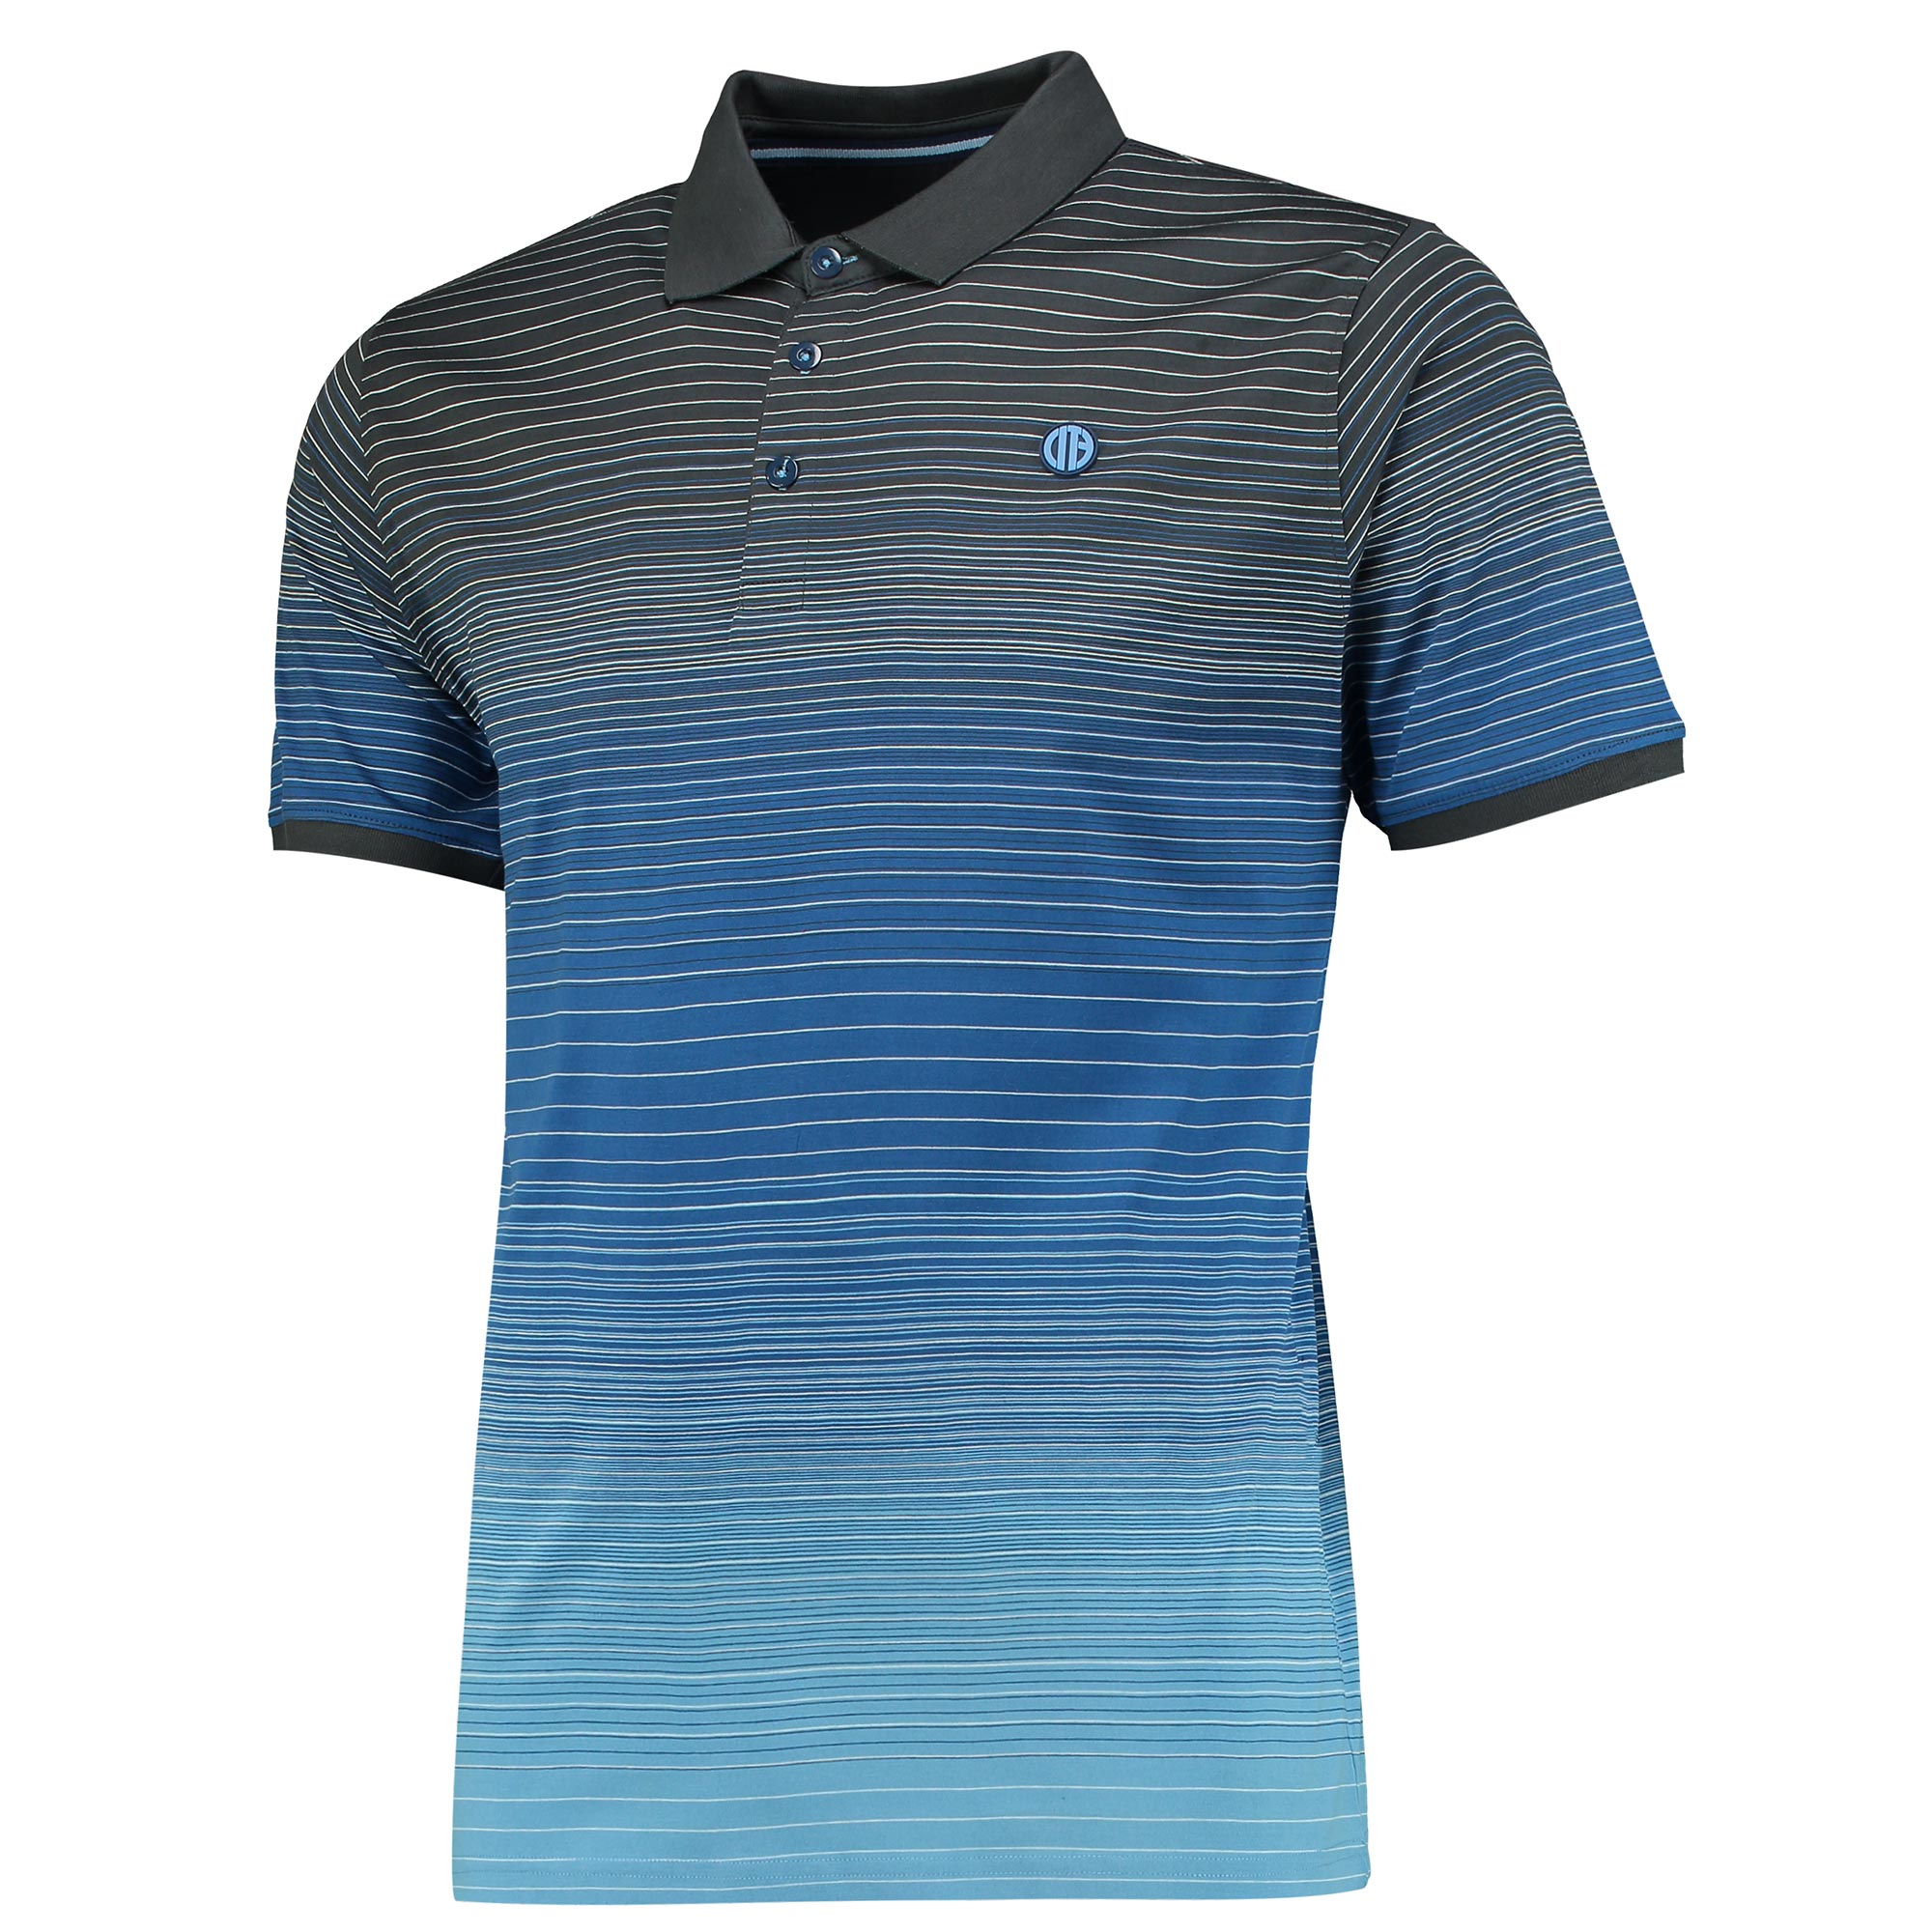 Manchester City Terrace Gradient Polo - Navy/Charcoal